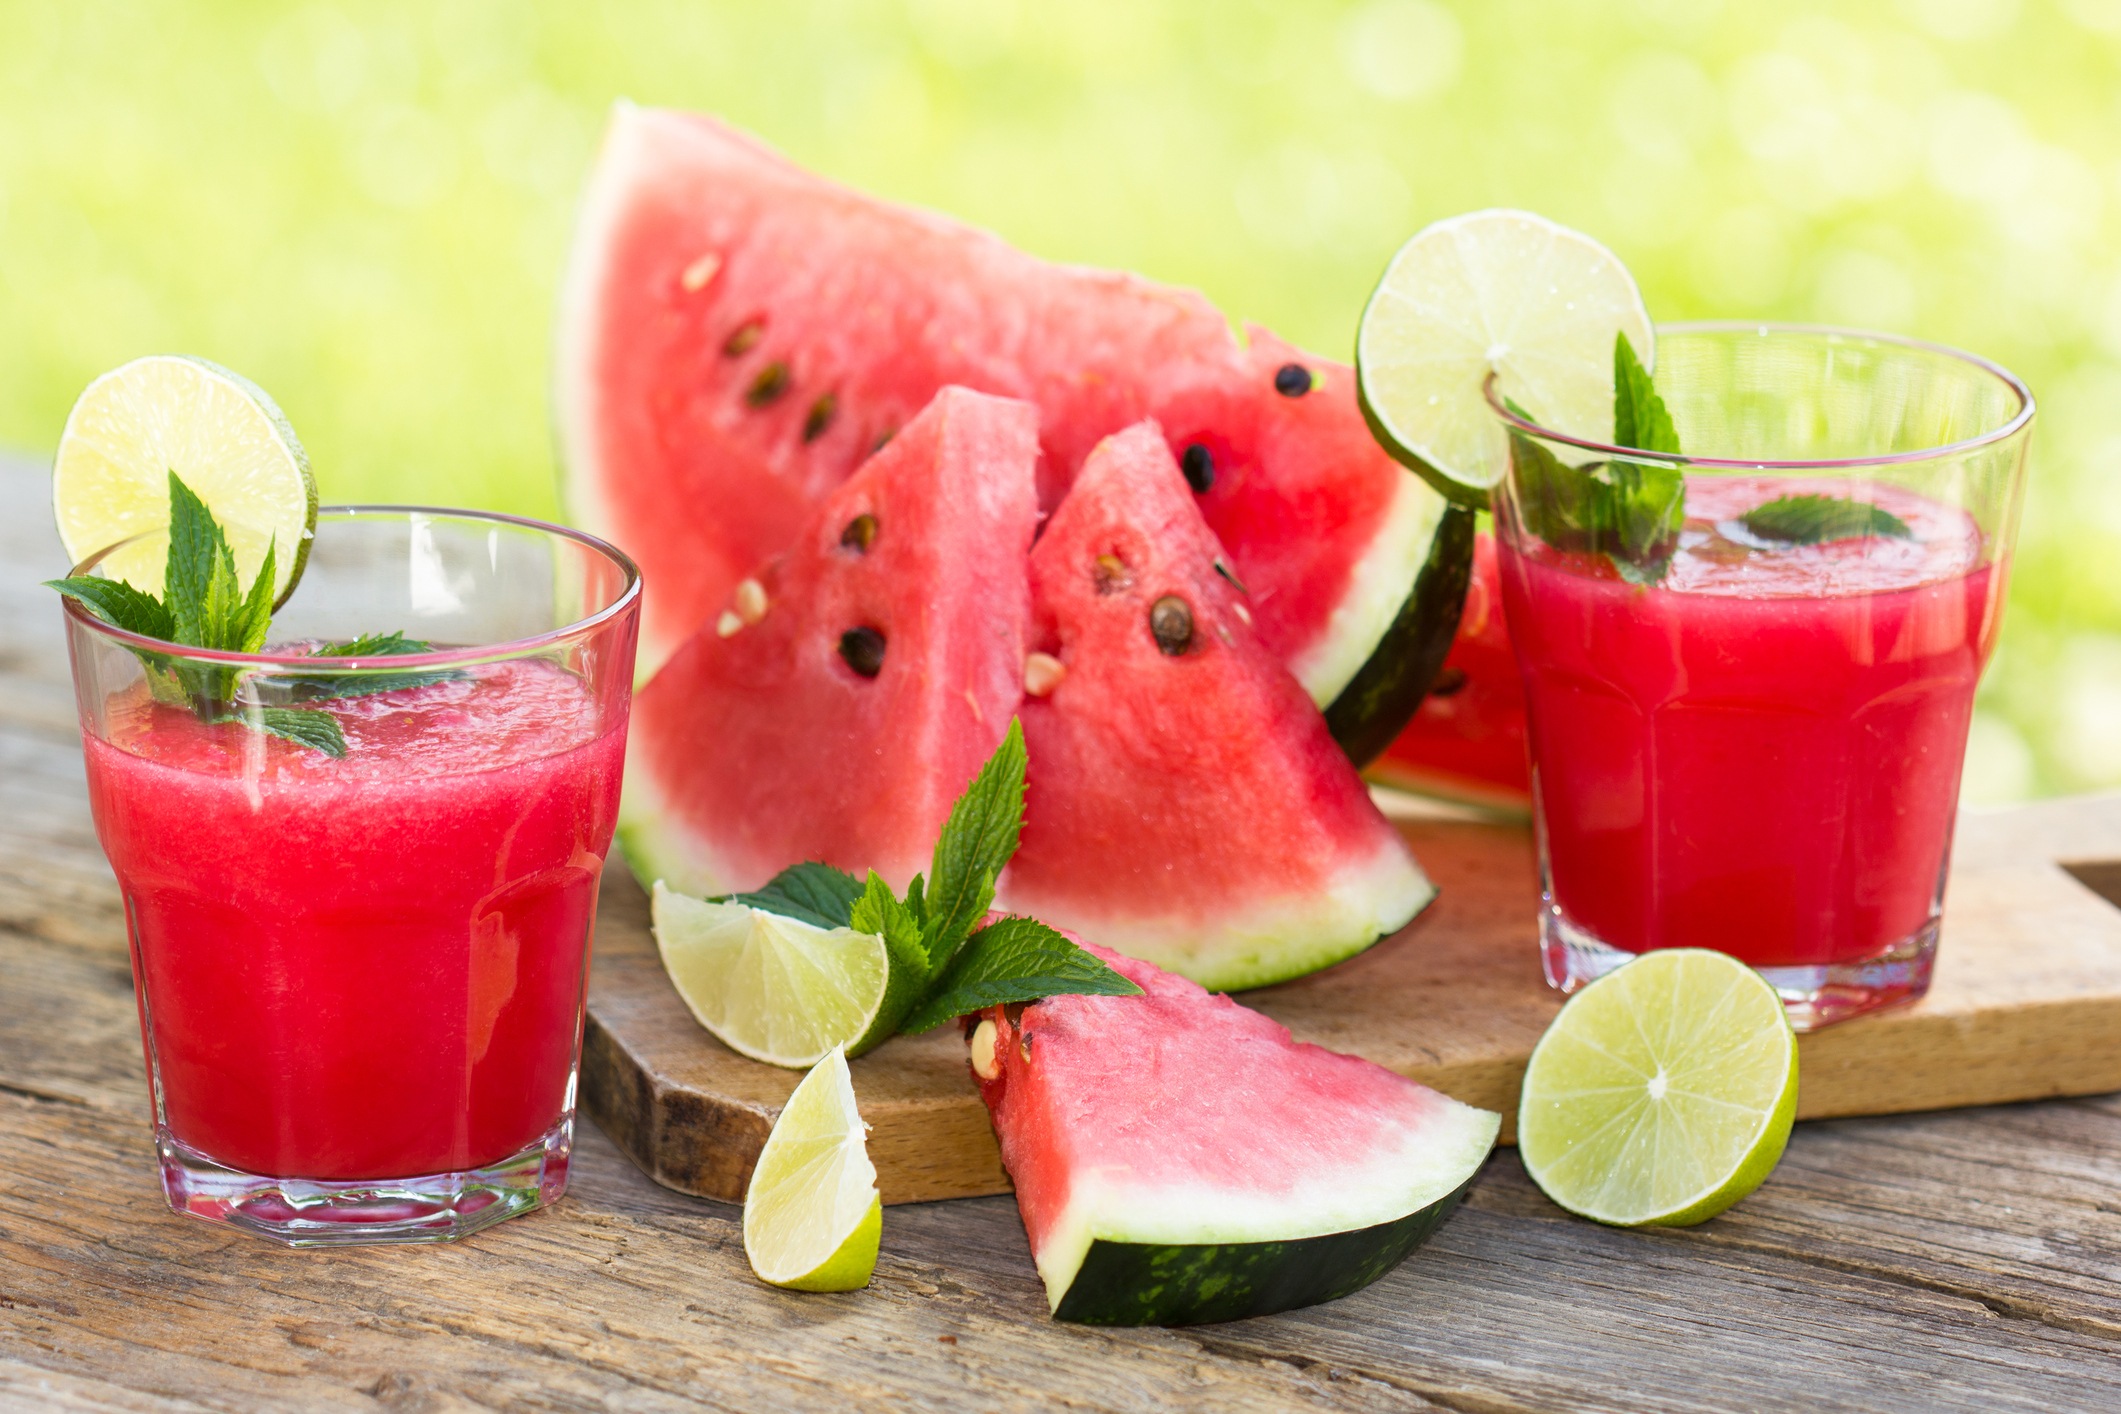 reduce blood pressure in overweight individuals with watermelon